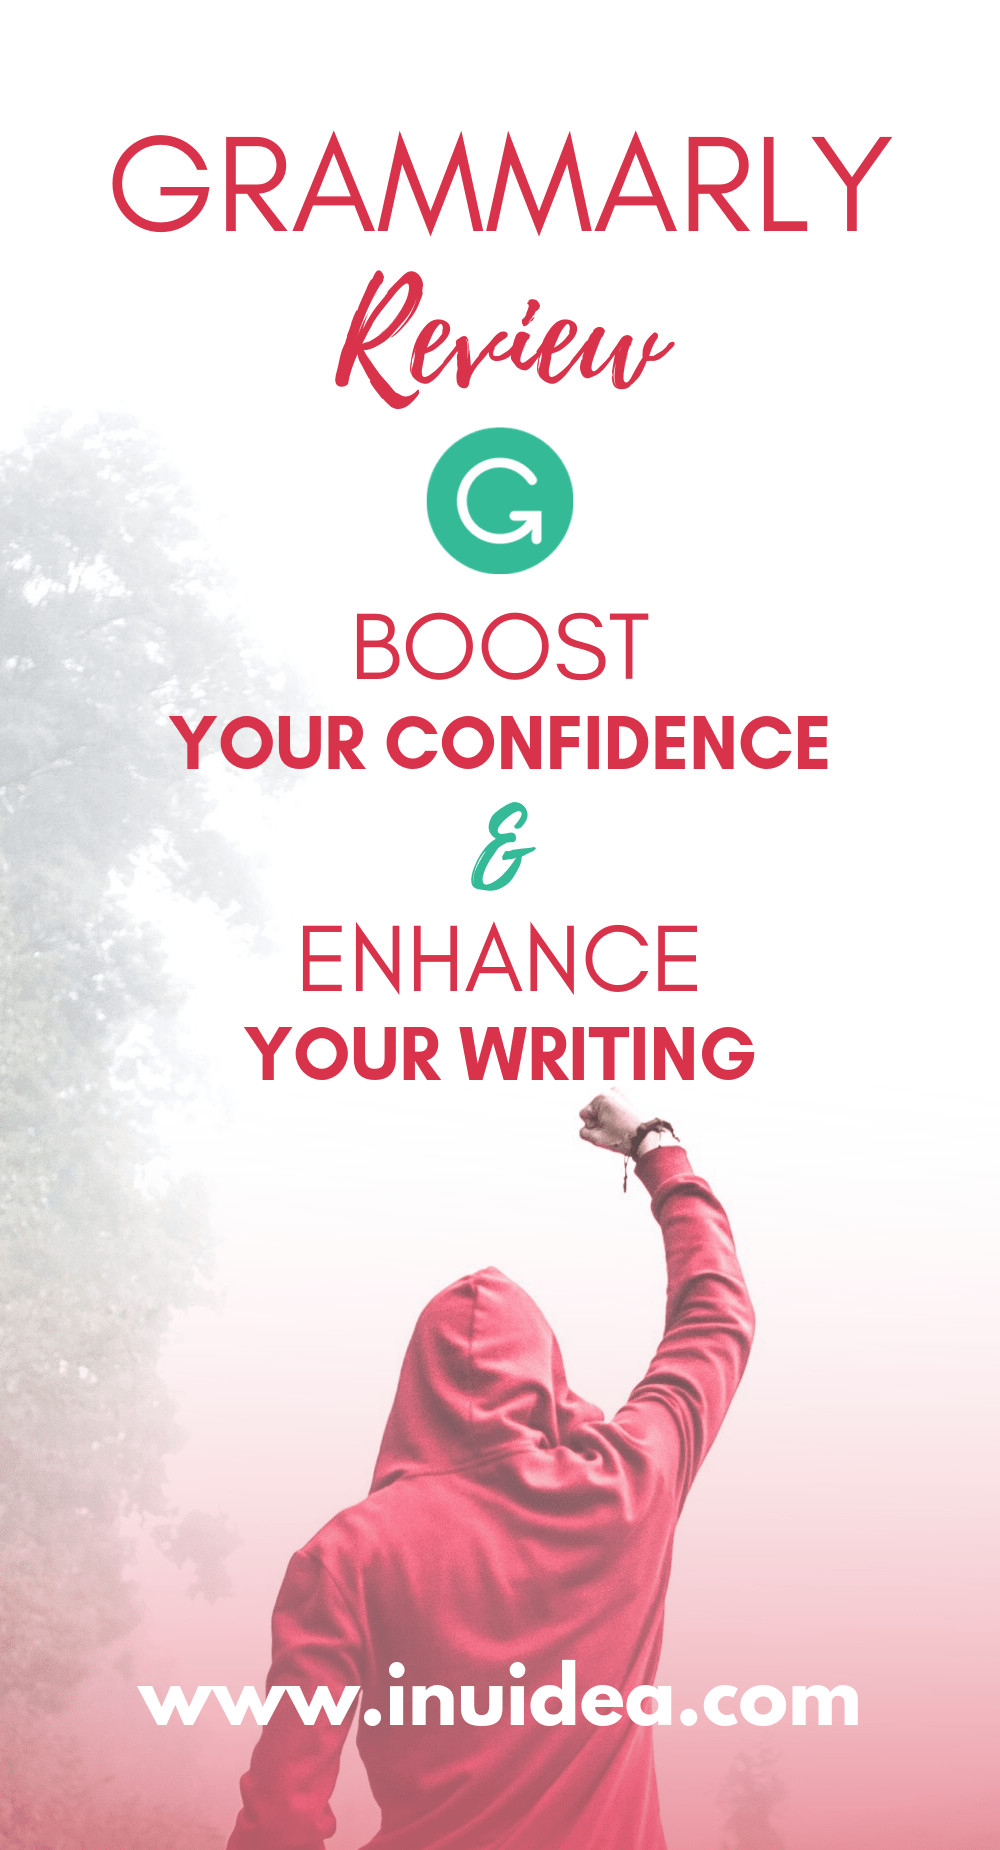 Buy Grammarly Price Worldwide